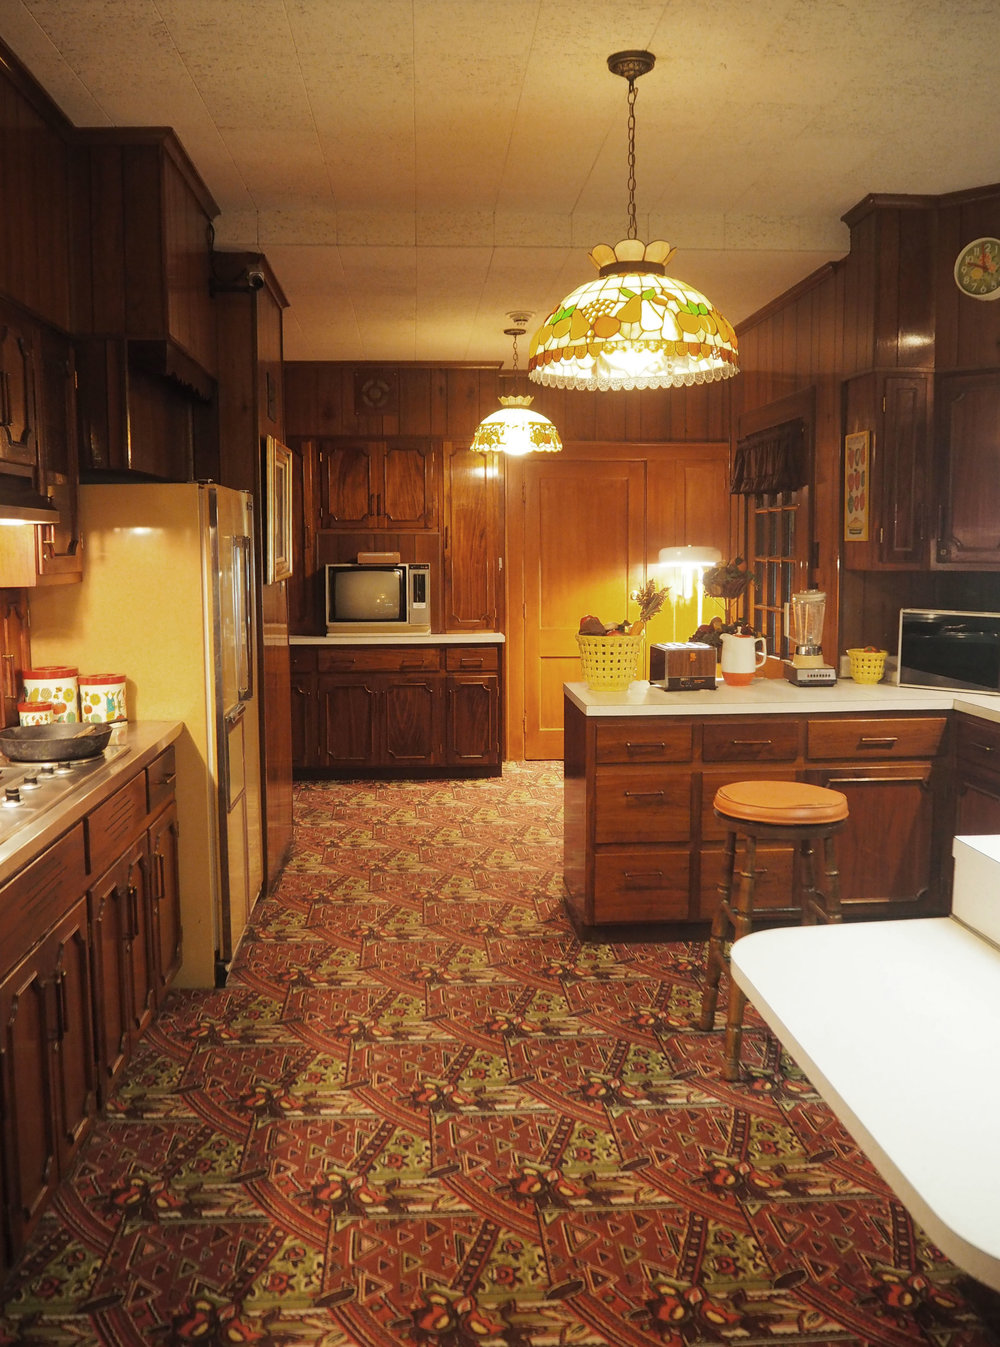 The Kitchen inside Elvis Presley's Graceland. To see more pics, click on the photo.